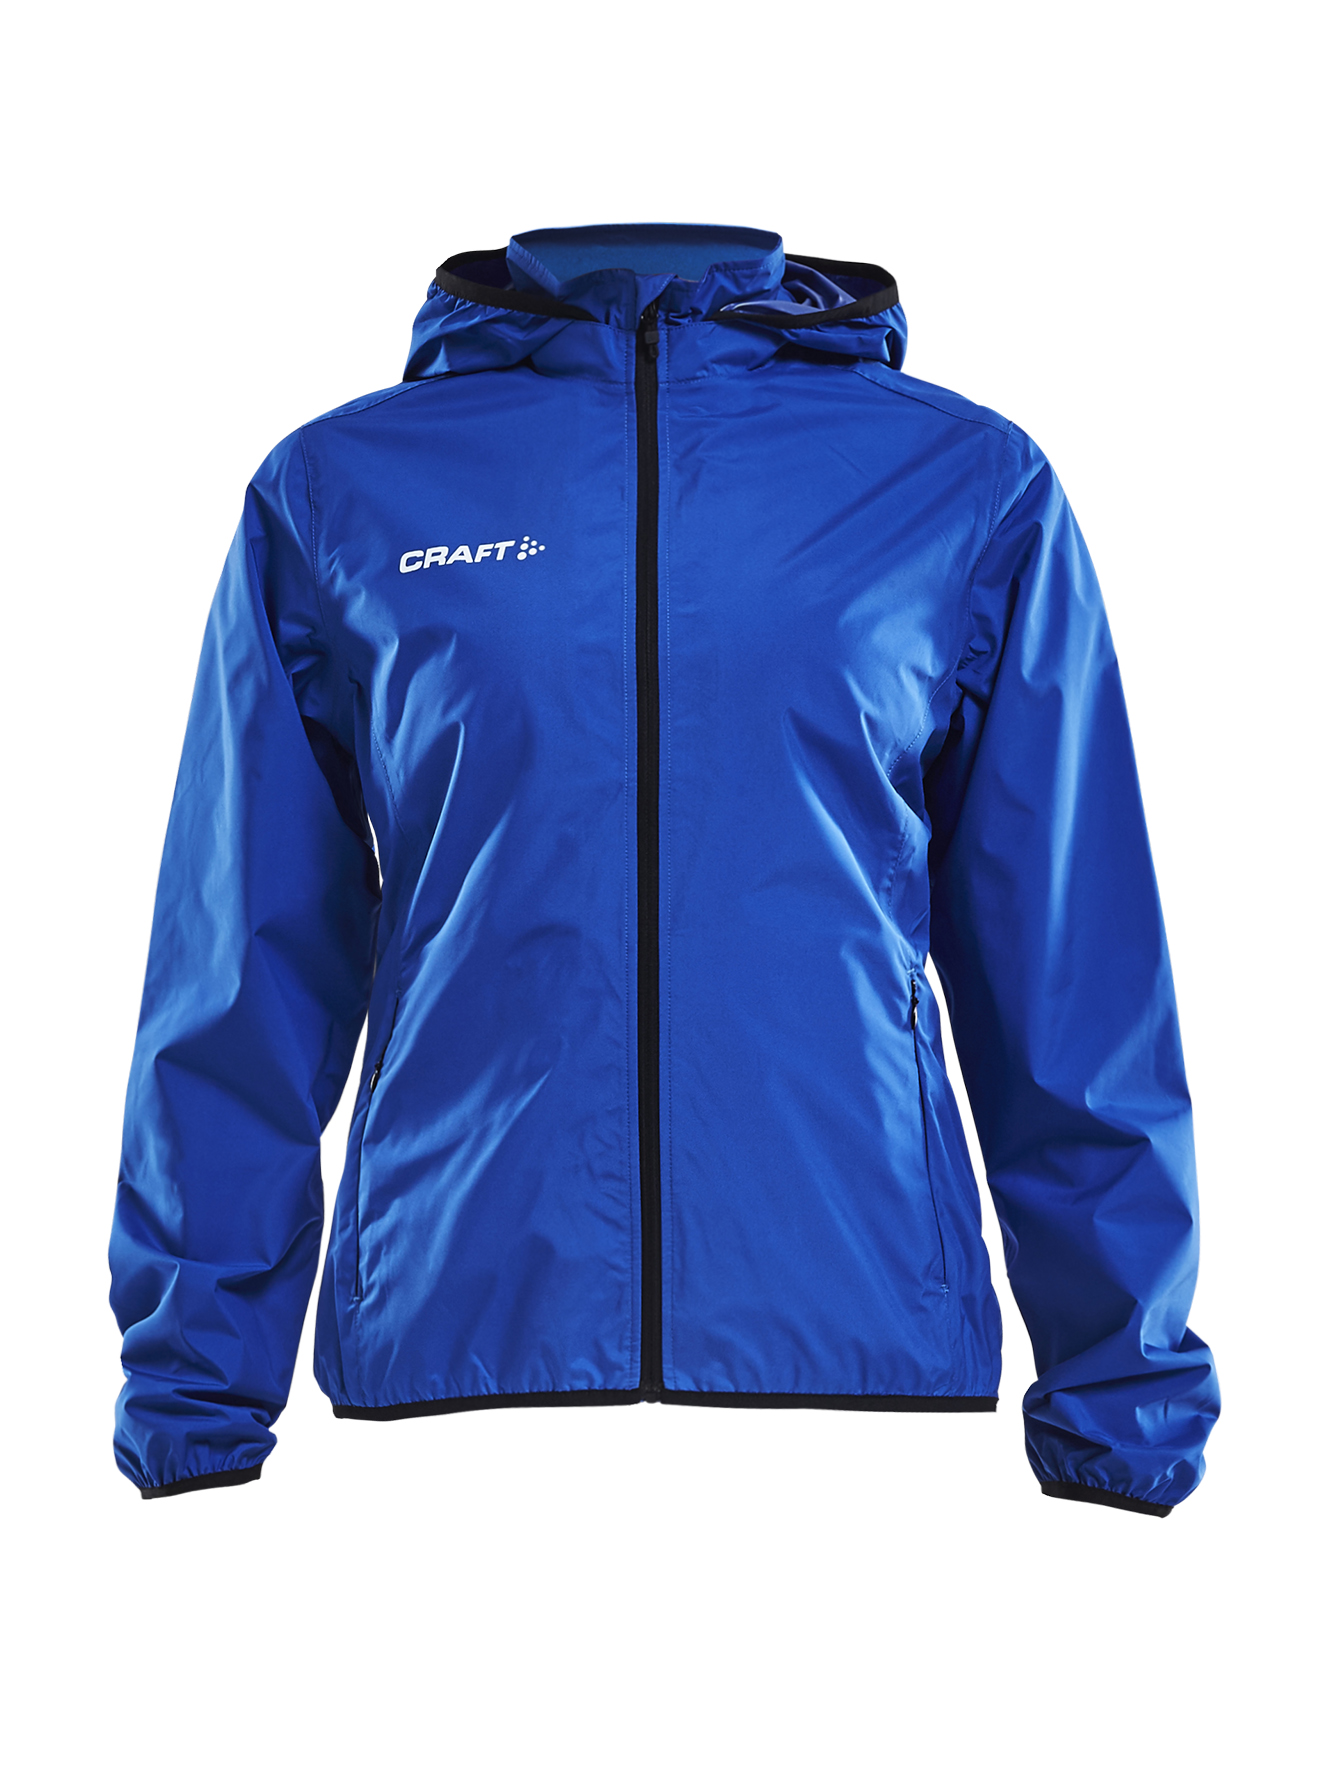 Craft Jacket Rain W ROYAL BLUE/BLACK